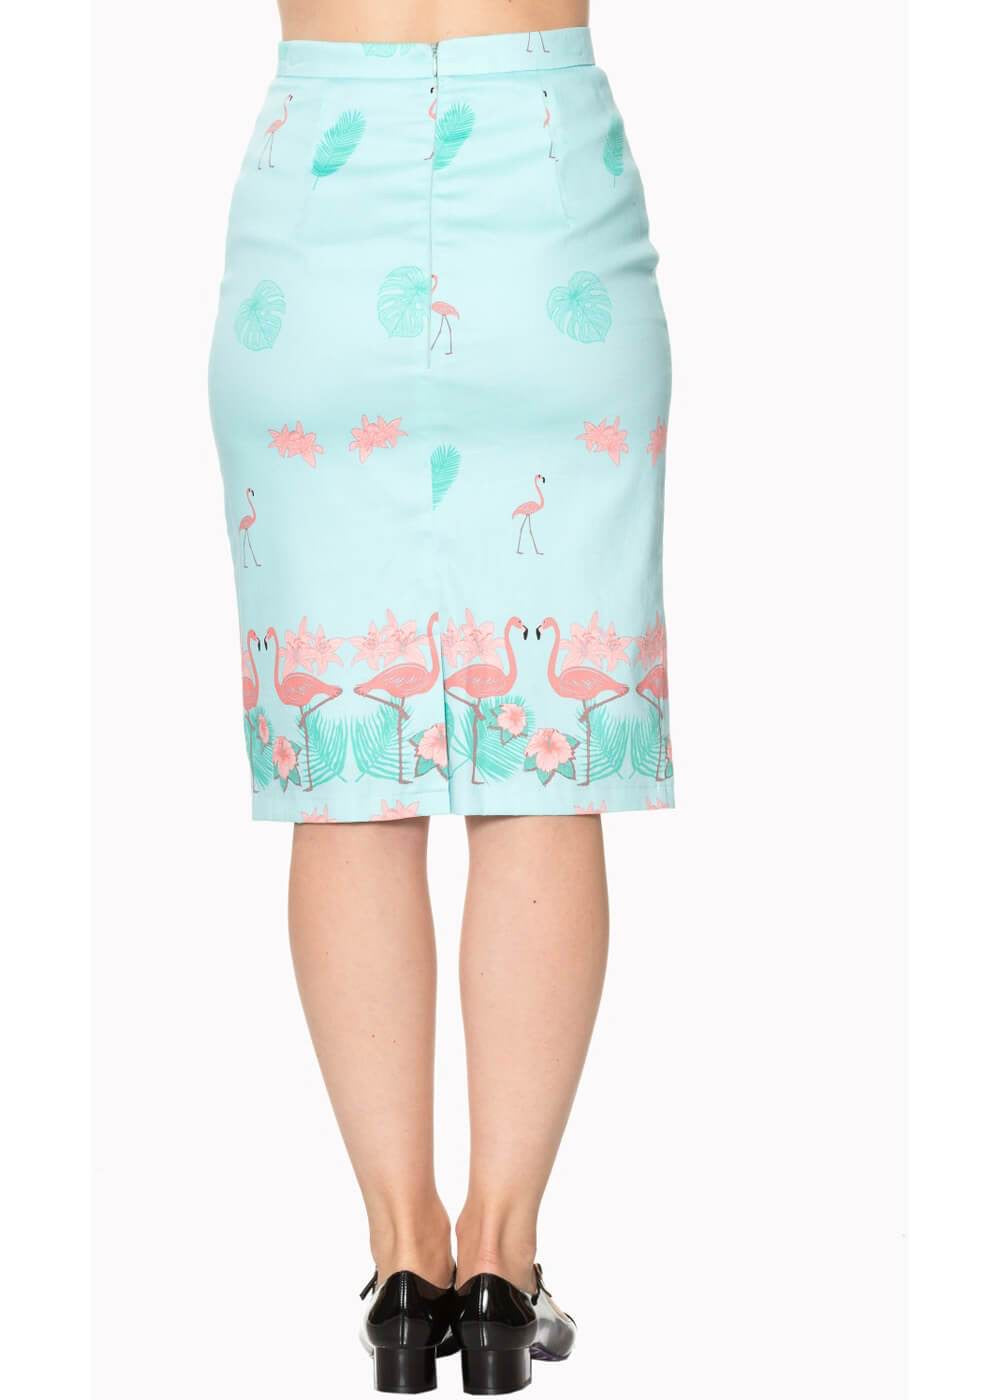 Flamingo Pencil Skirt - Isabel's Retro & Vintage Clothing